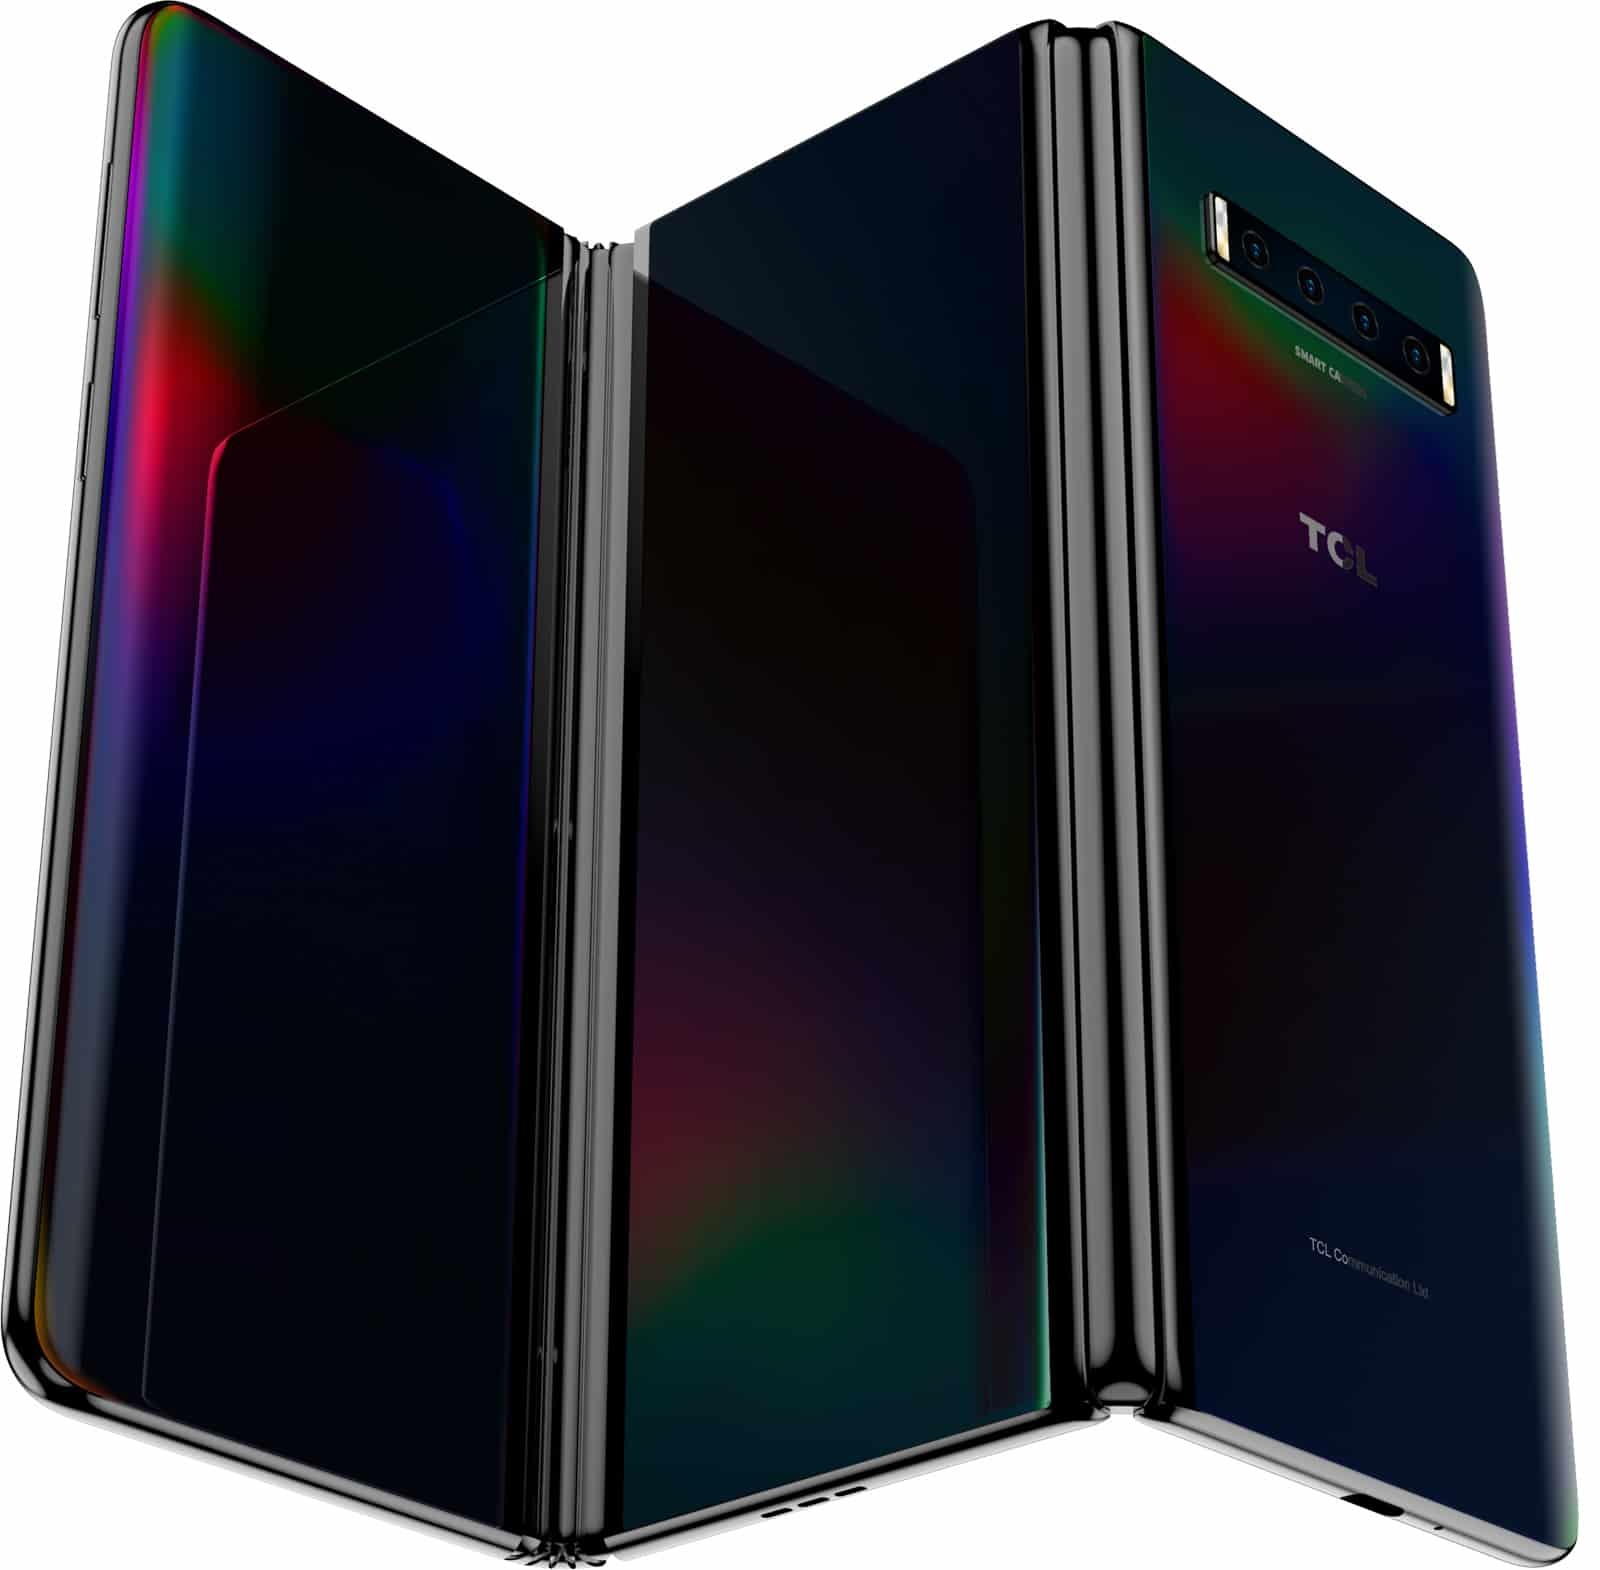 Tri fold display concept image 1